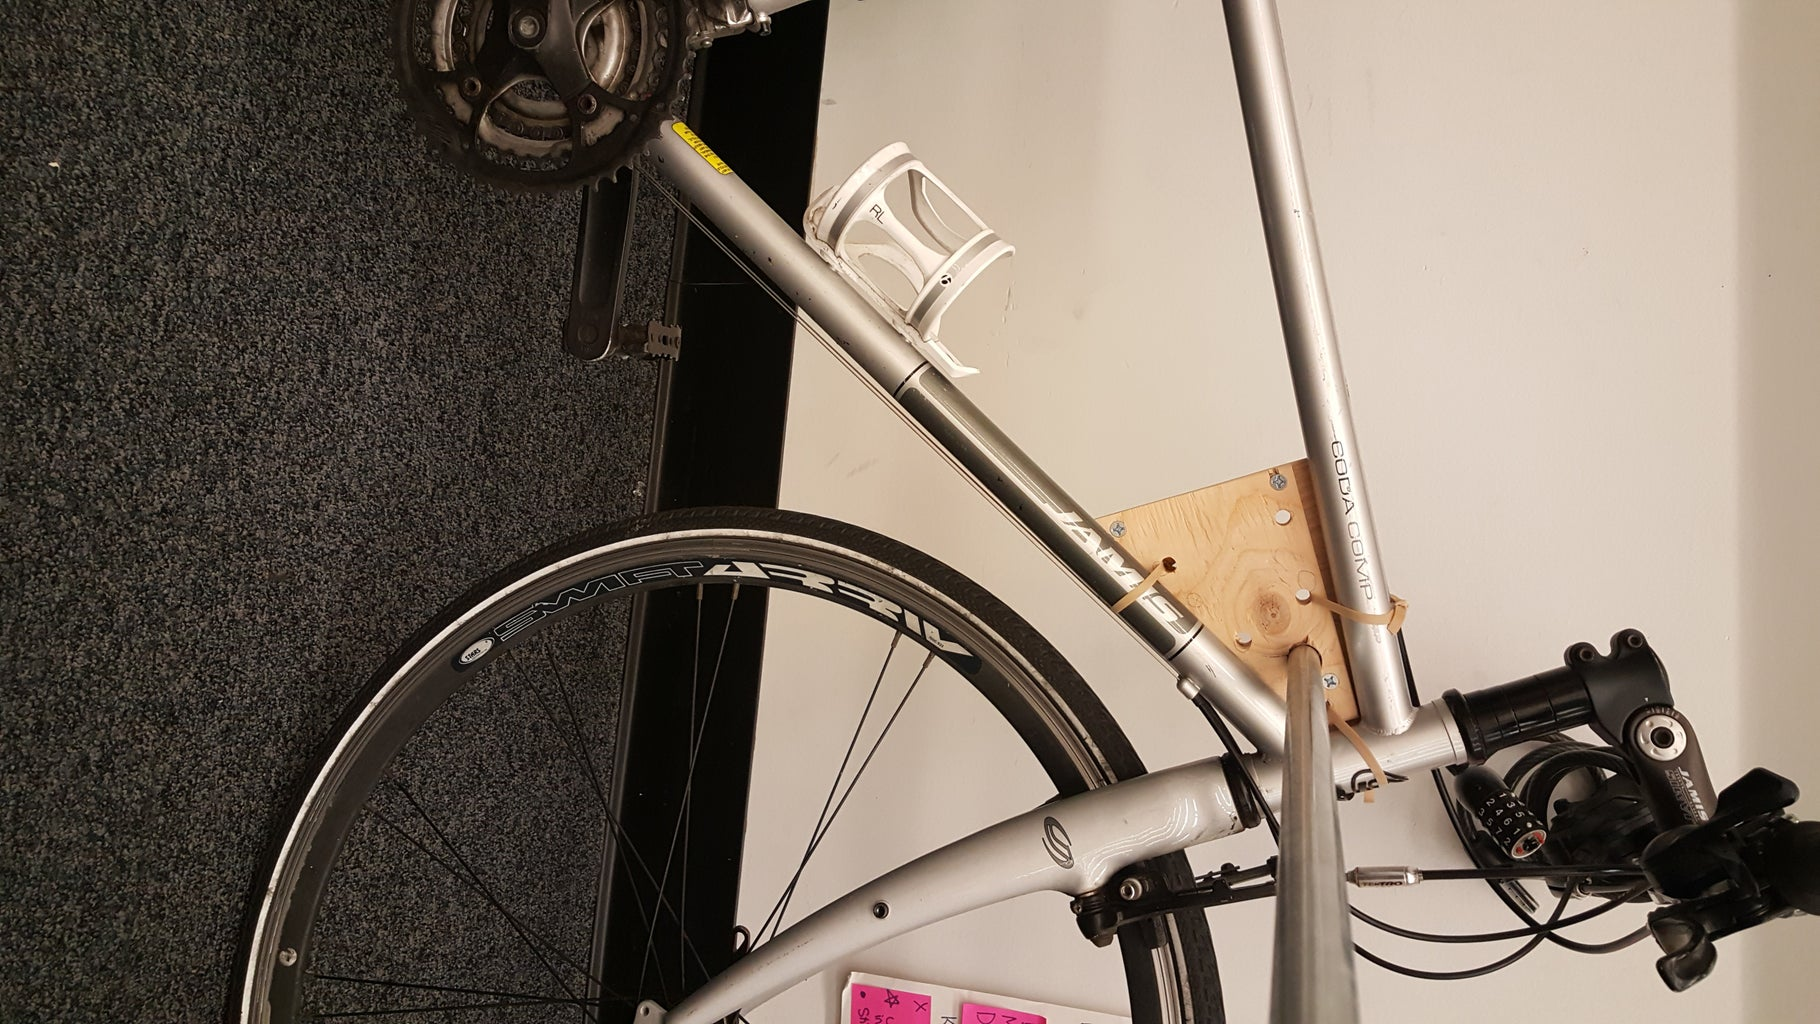 Bicycle Attachment Plate: Fasten